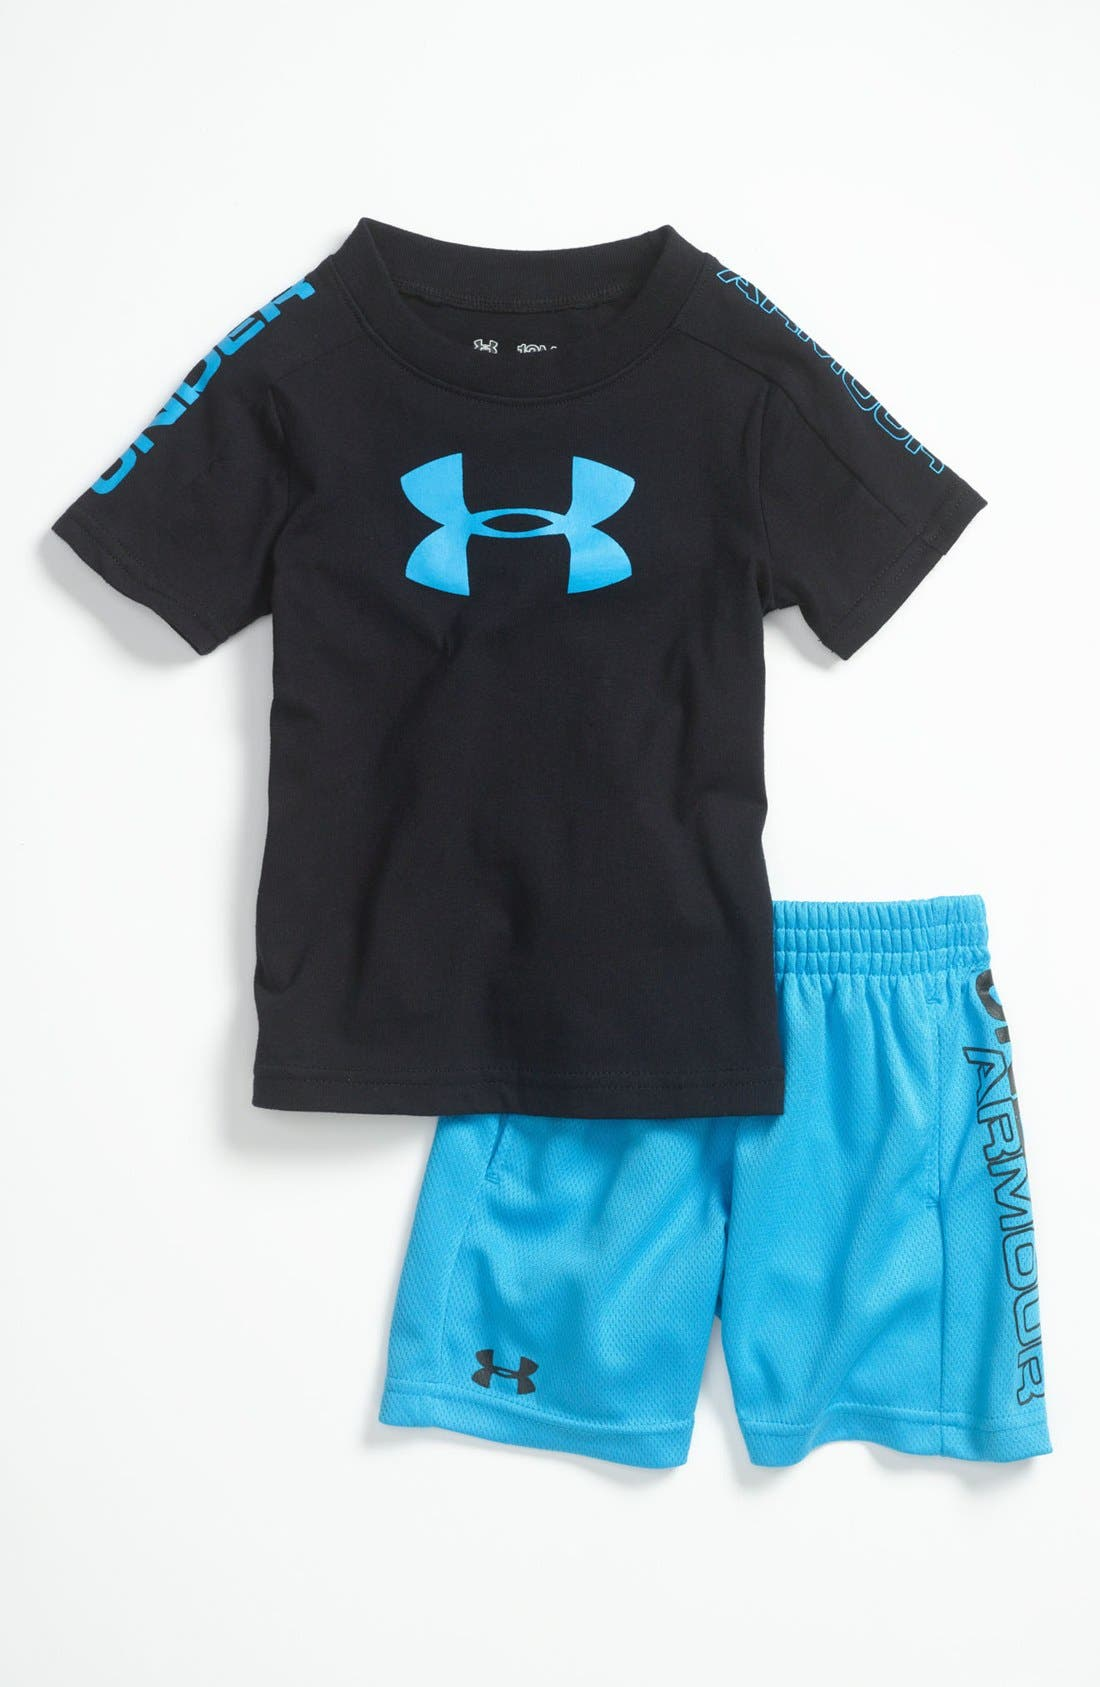 Main Image - Under Armour 'Integrity 2.0' T-Shirt & Shorts (Baby)